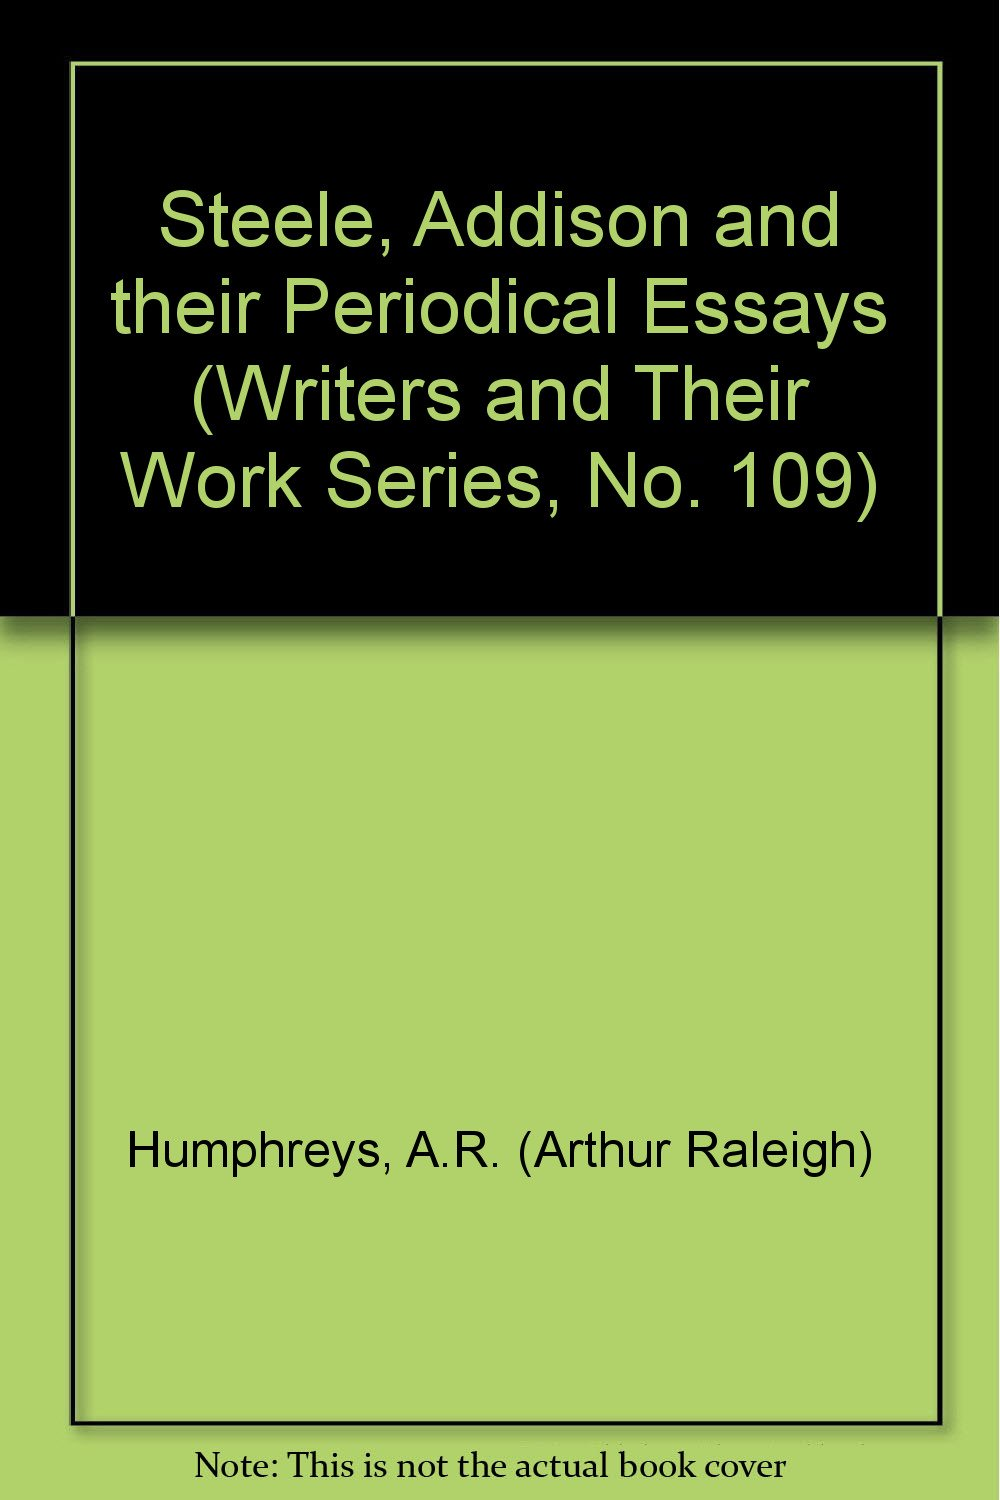 steele addison and their periodical essays writers and their work  steele addison and their periodical essays writers and their work series  no  paperback